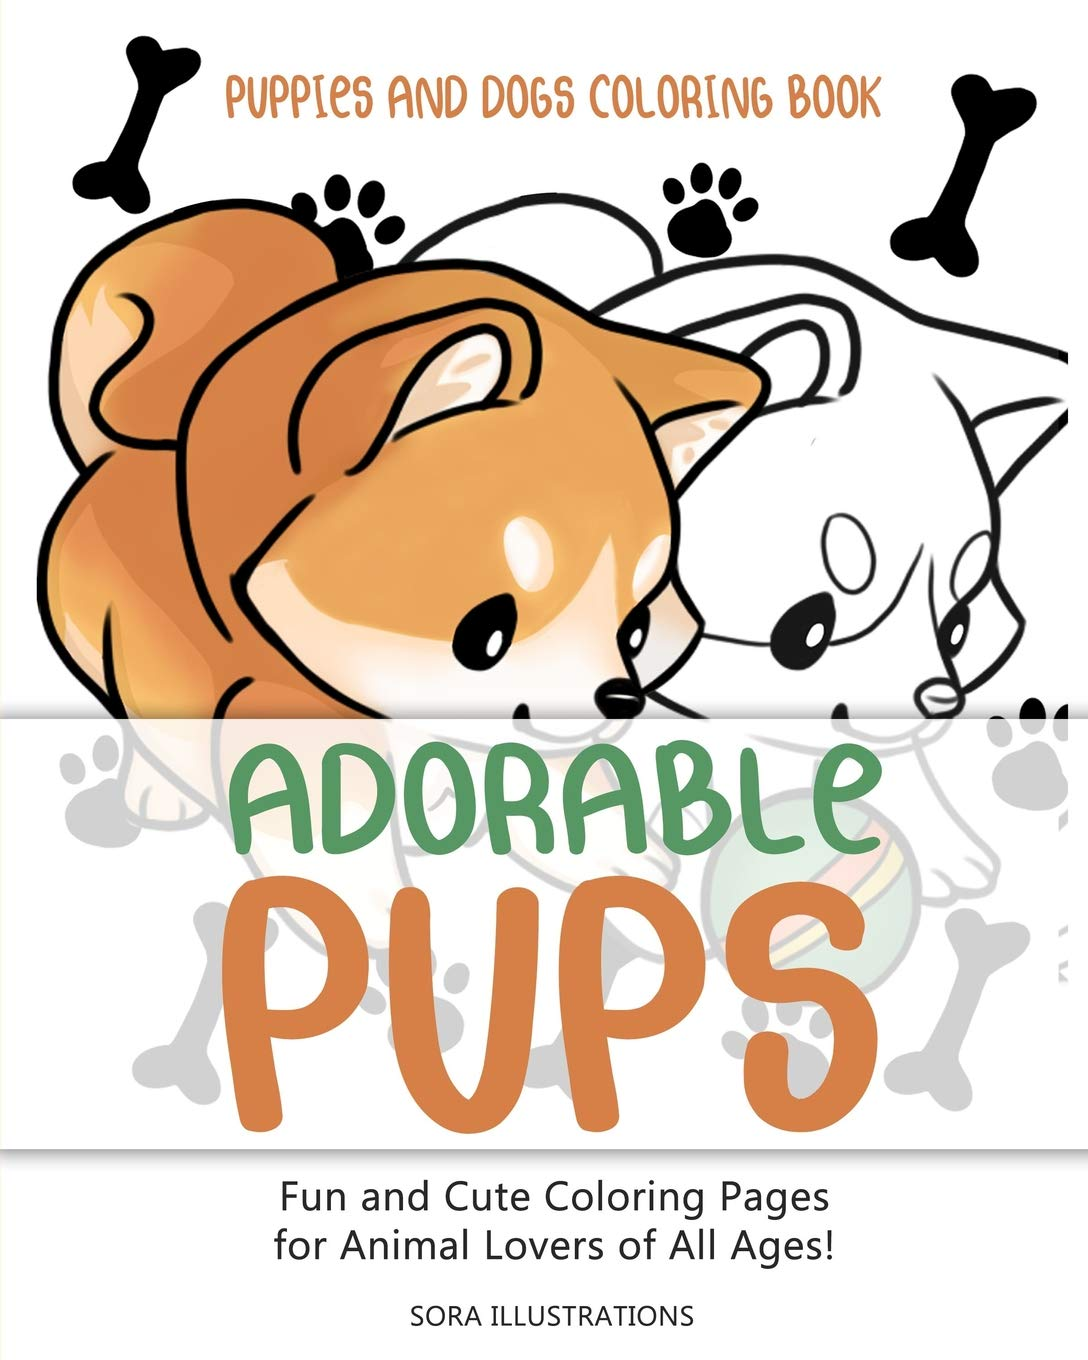 Puppies And Dogs Coloring Book Adorable Pups Fun And Cute Coloring Pages For Animal Lovers Of All Ages Animal Coloring Illustrations Sora 9781098869625 Amazon Com Books